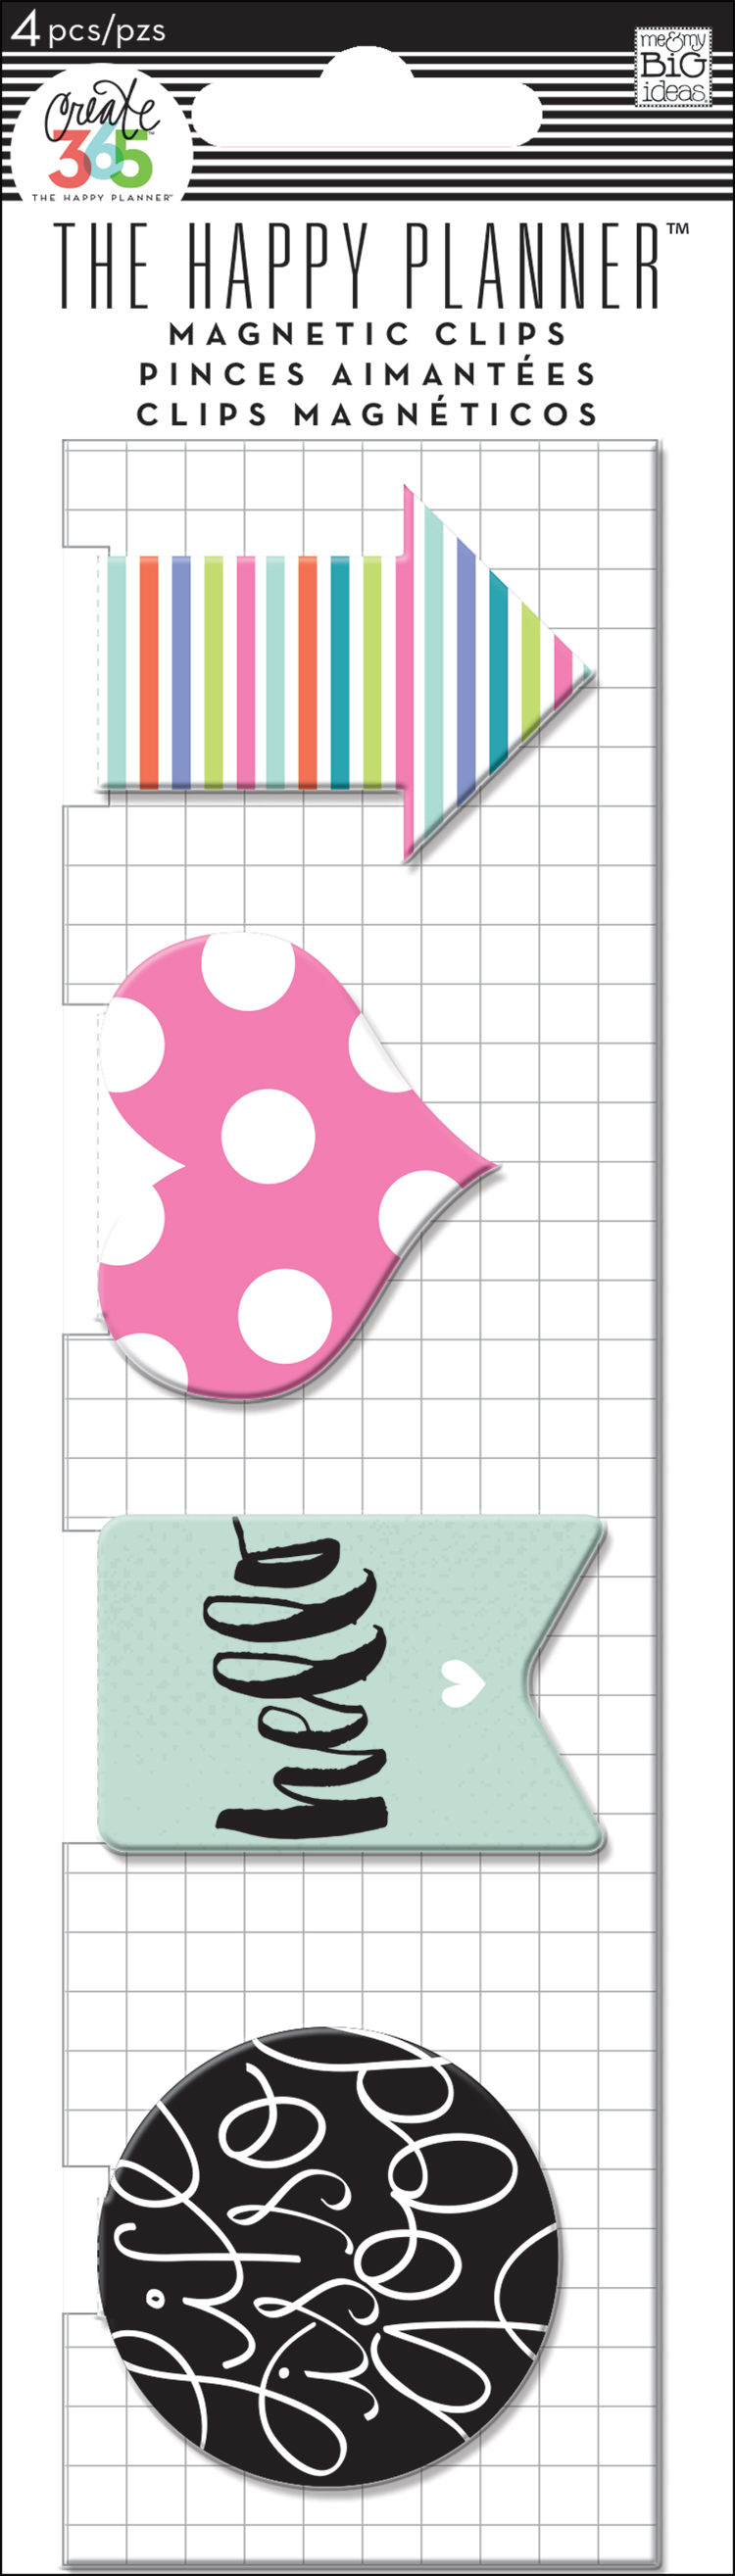 'Hello' Magnetic Page Clips for The Happy Planner™ | me & my BIG ideas.jpg